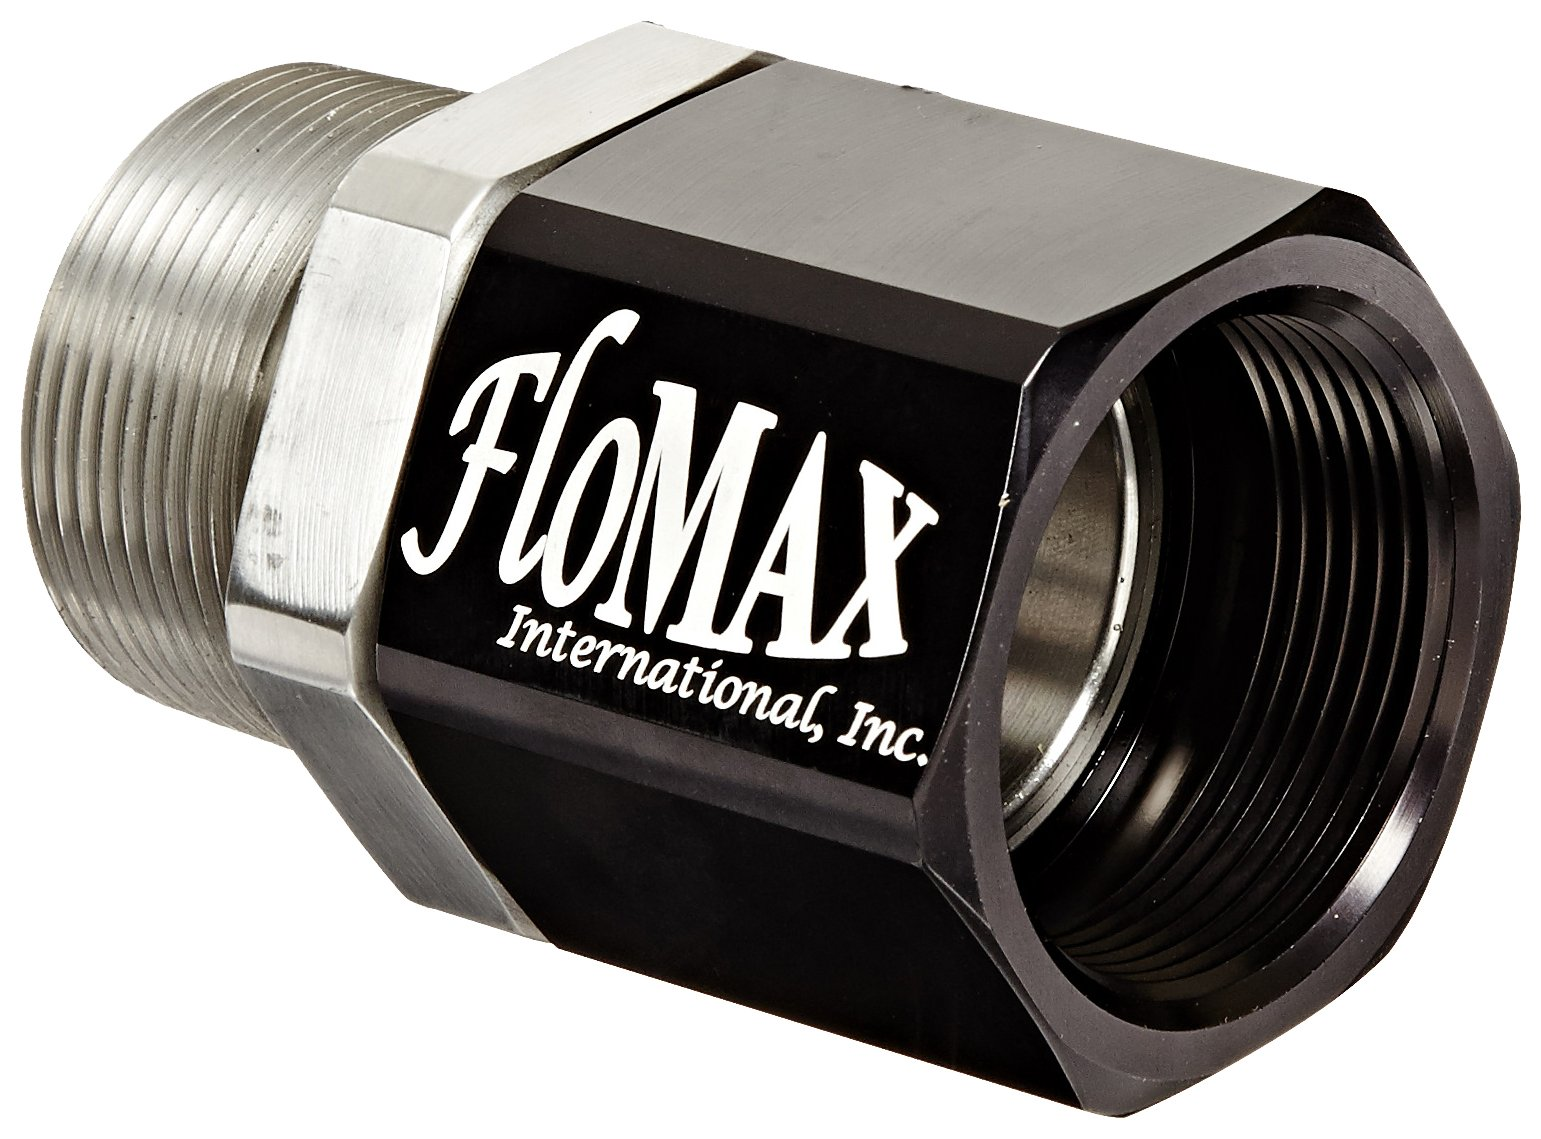 Dixon FNS Black Stainless Steel Dry Disconnect Fitting, Flomax Diesel Fuel Standard Swivel, 1-1/2'' NPT Male x 1-1/2'' NPT Female